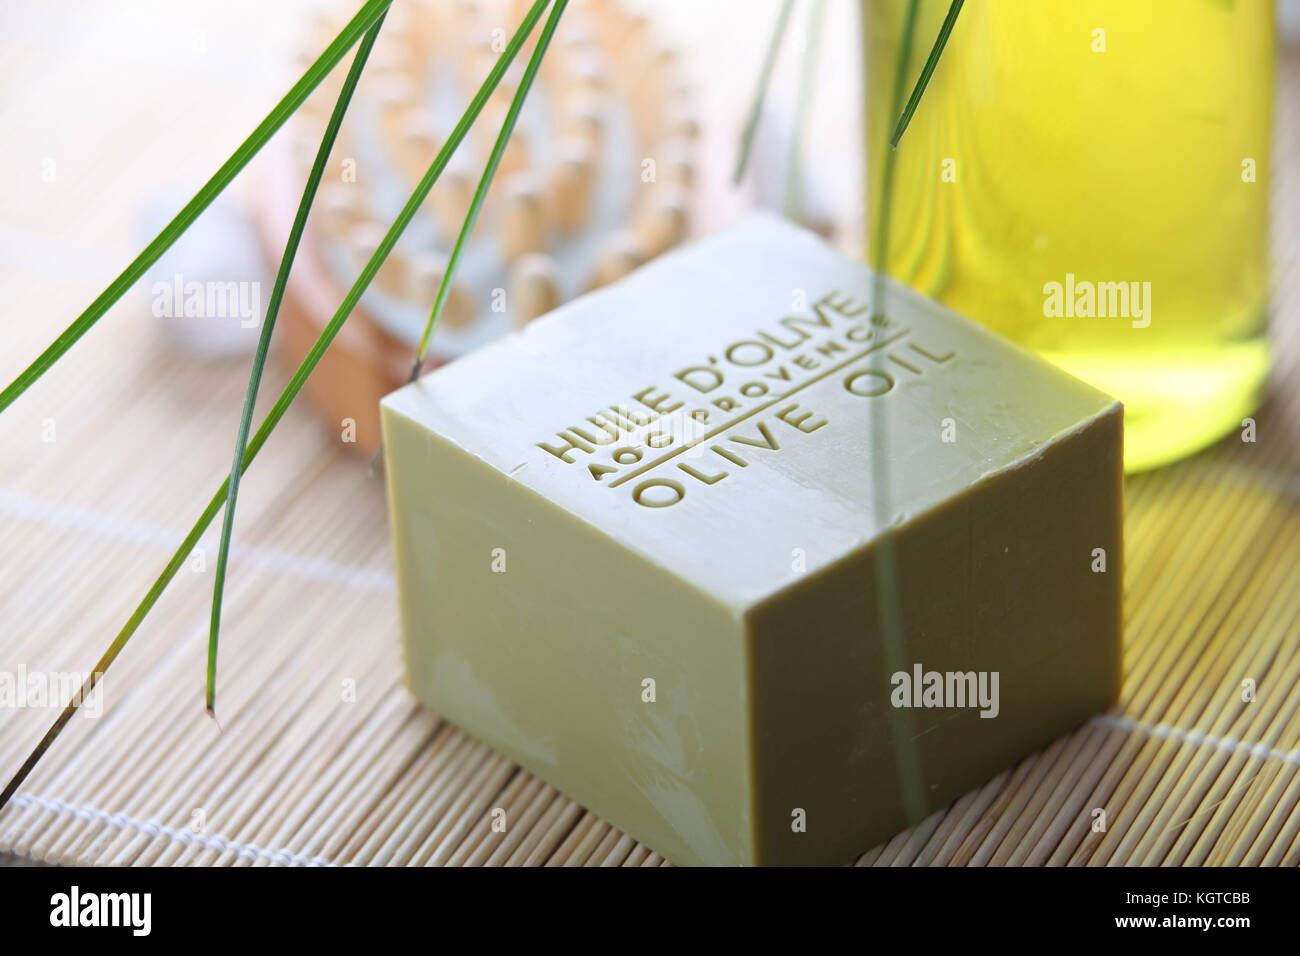 Closeup of olive oil soap bar - Stock Image